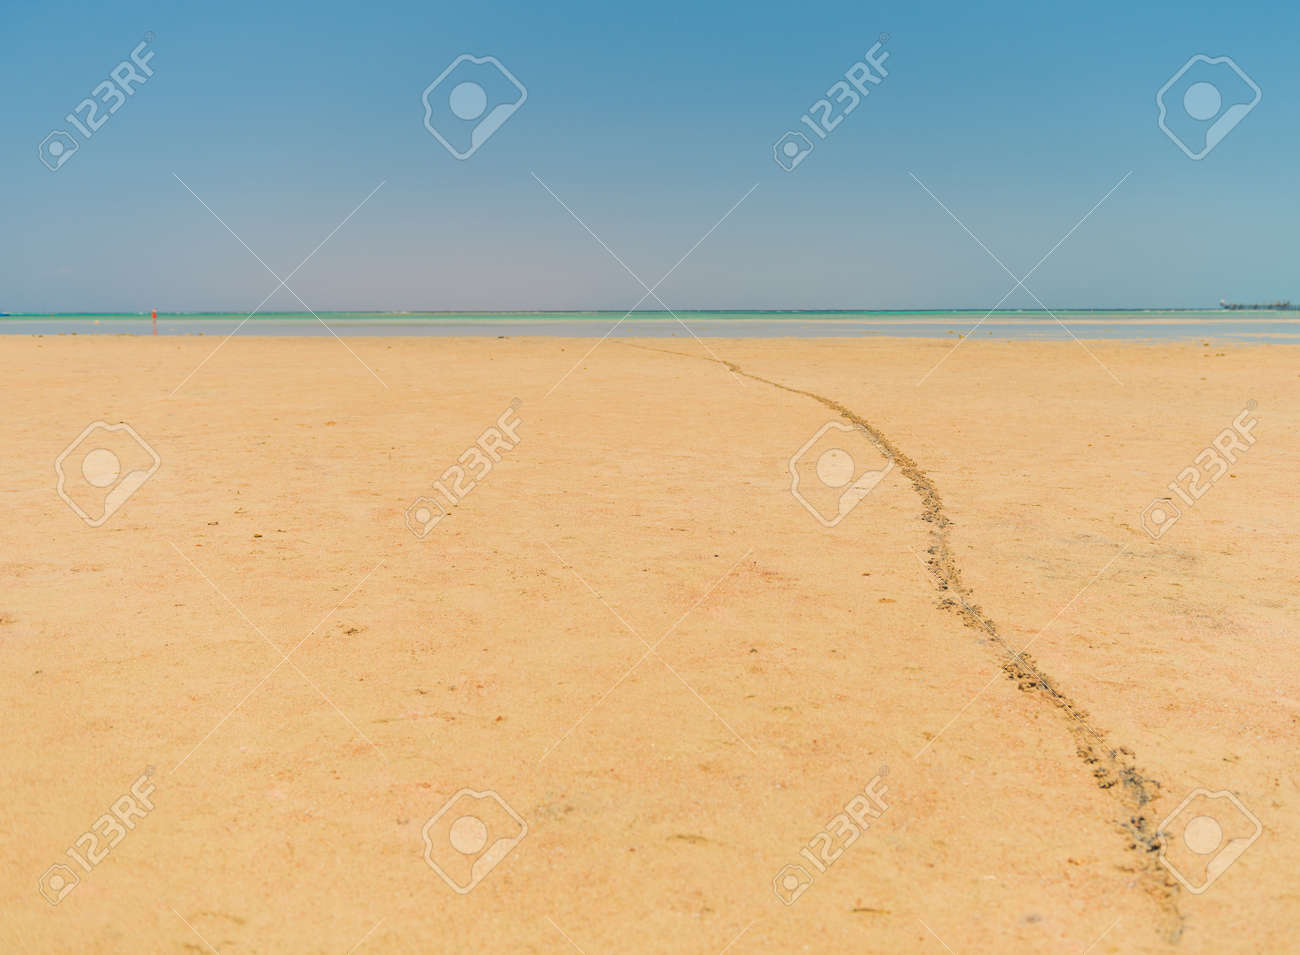 leading line from footprints on sandy beach - 127951875